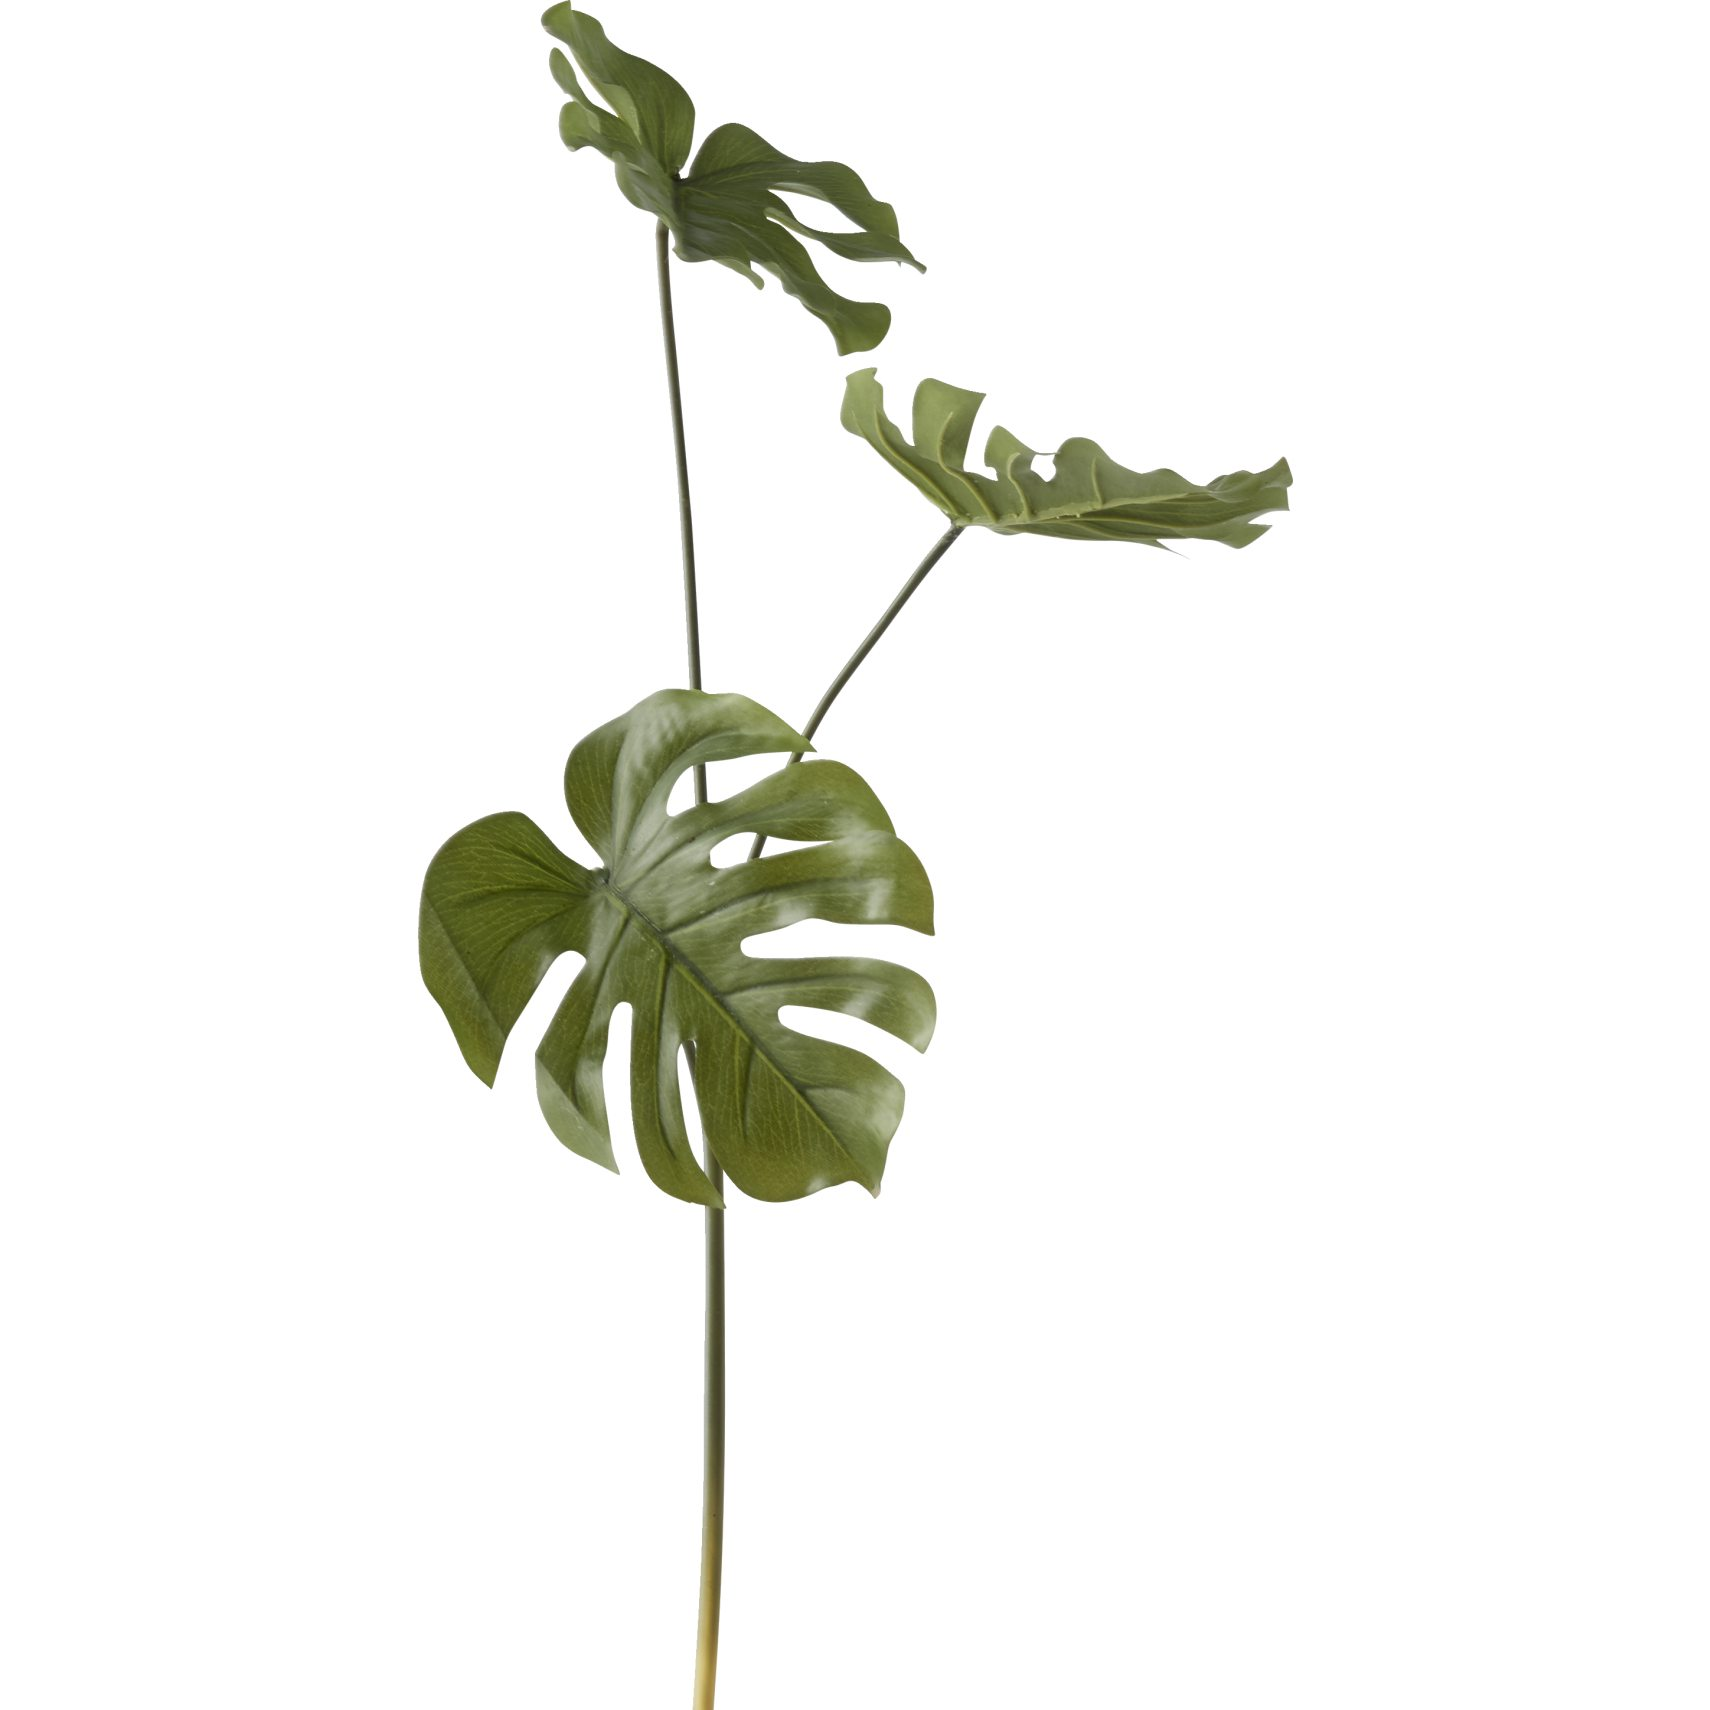 Monstera Kunstig plante - Grøn monstera